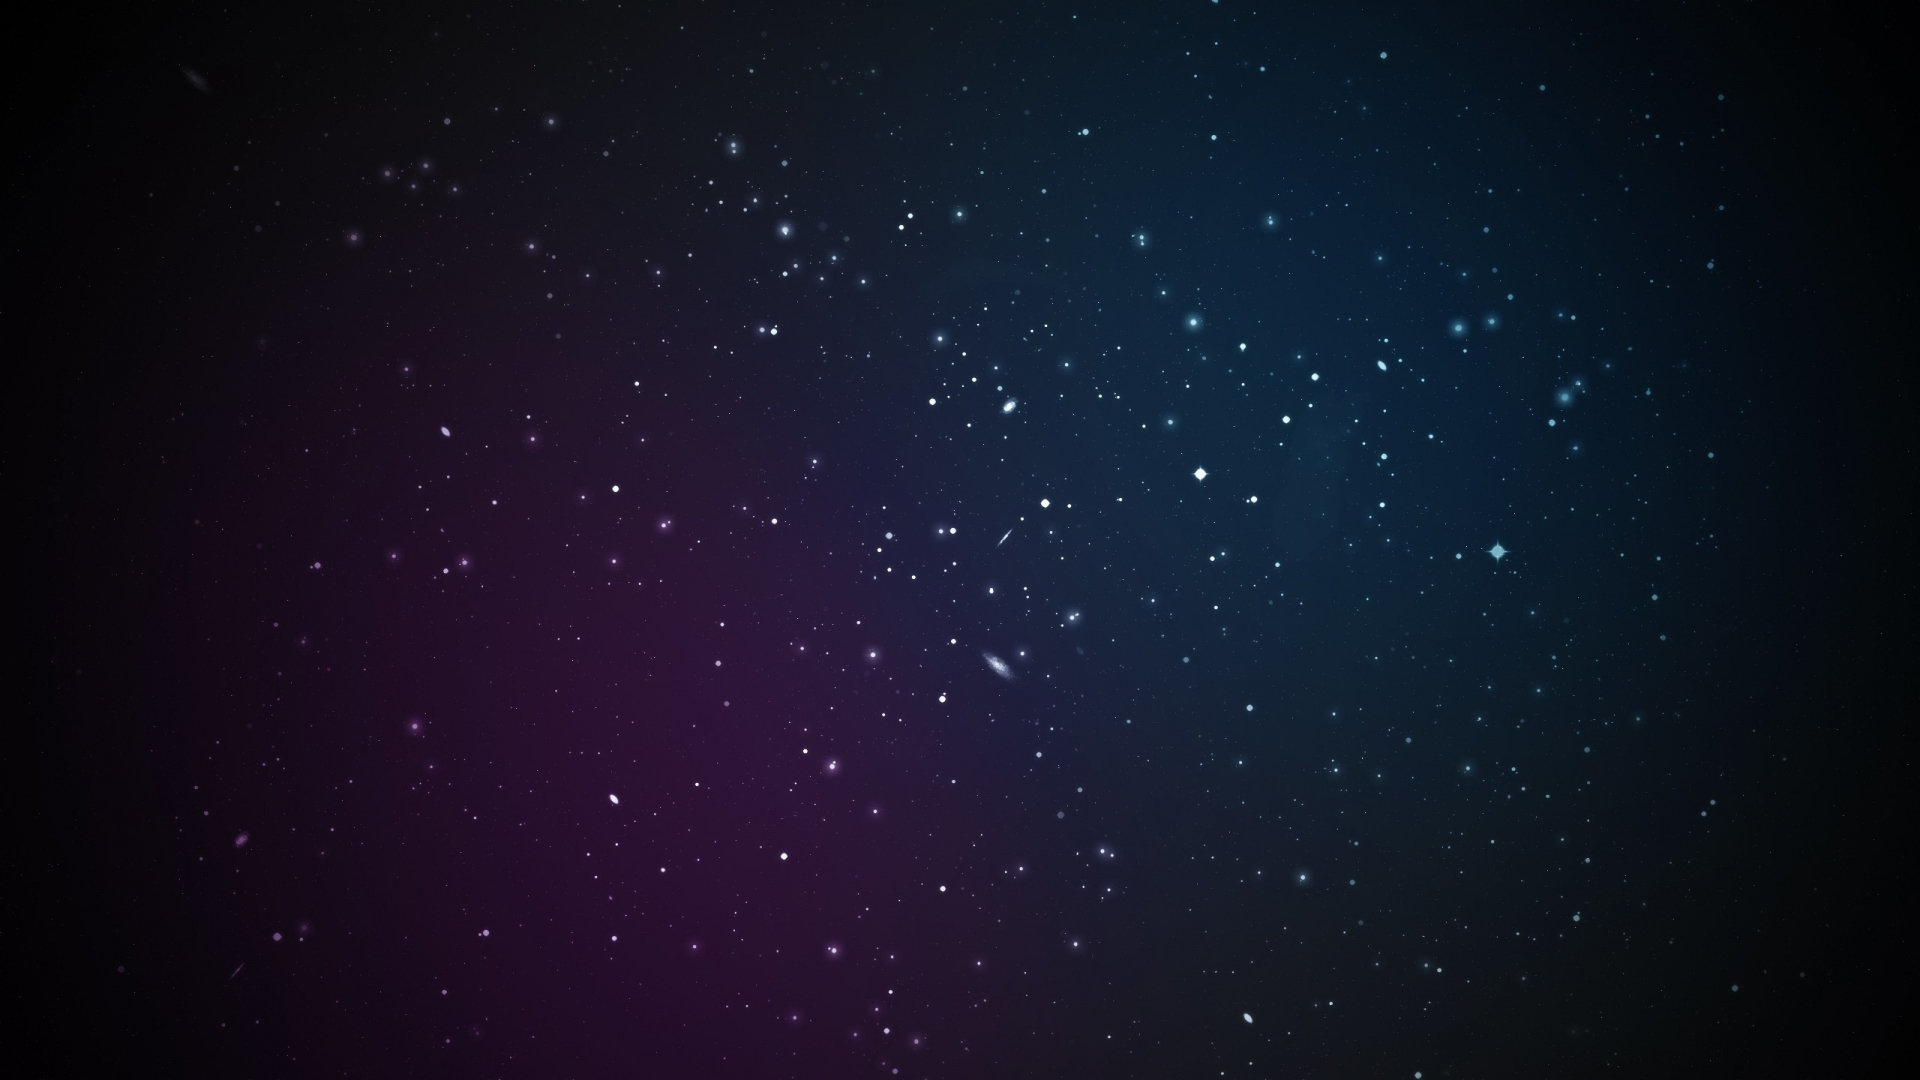 Download Stars in space wallpaper in Space wallpapers with all 1920x1080